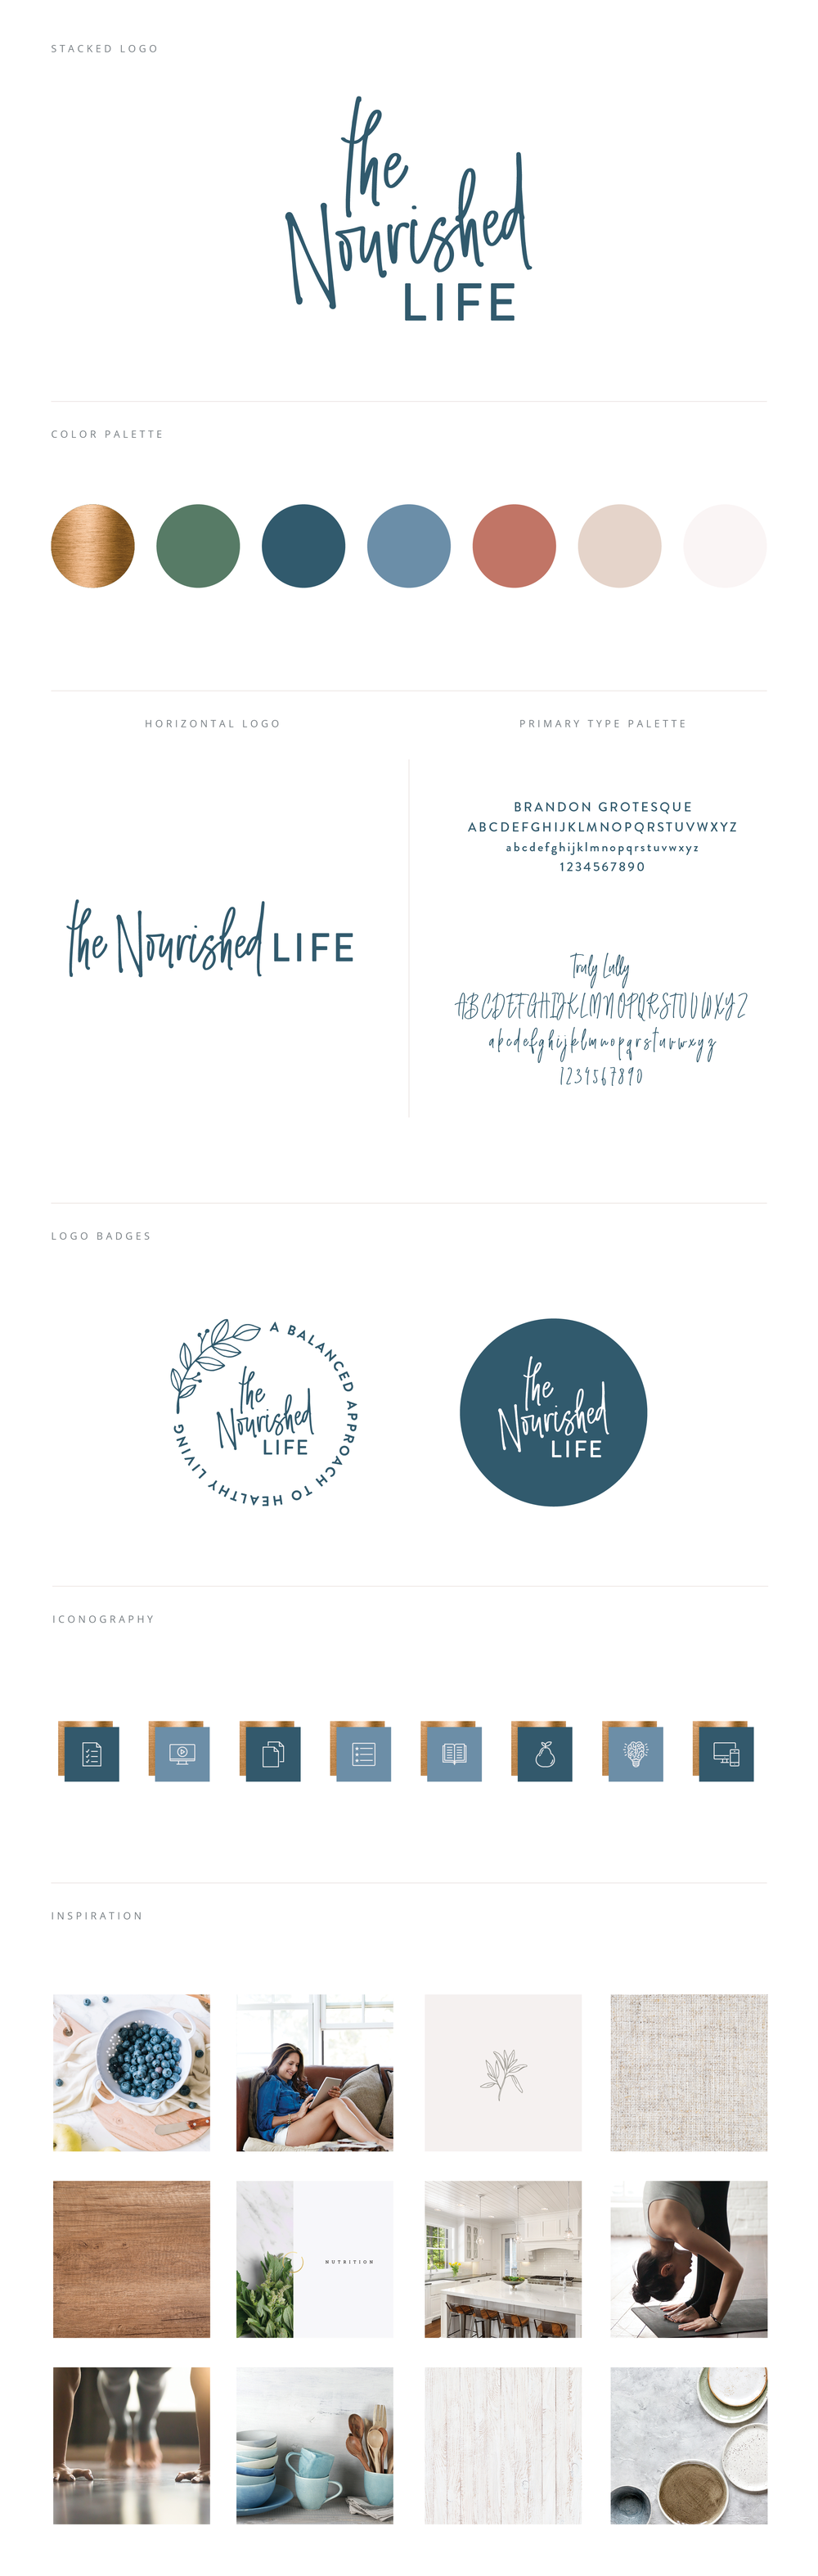 The Nourished Life Brand Board by Janessa Rae Design Creative